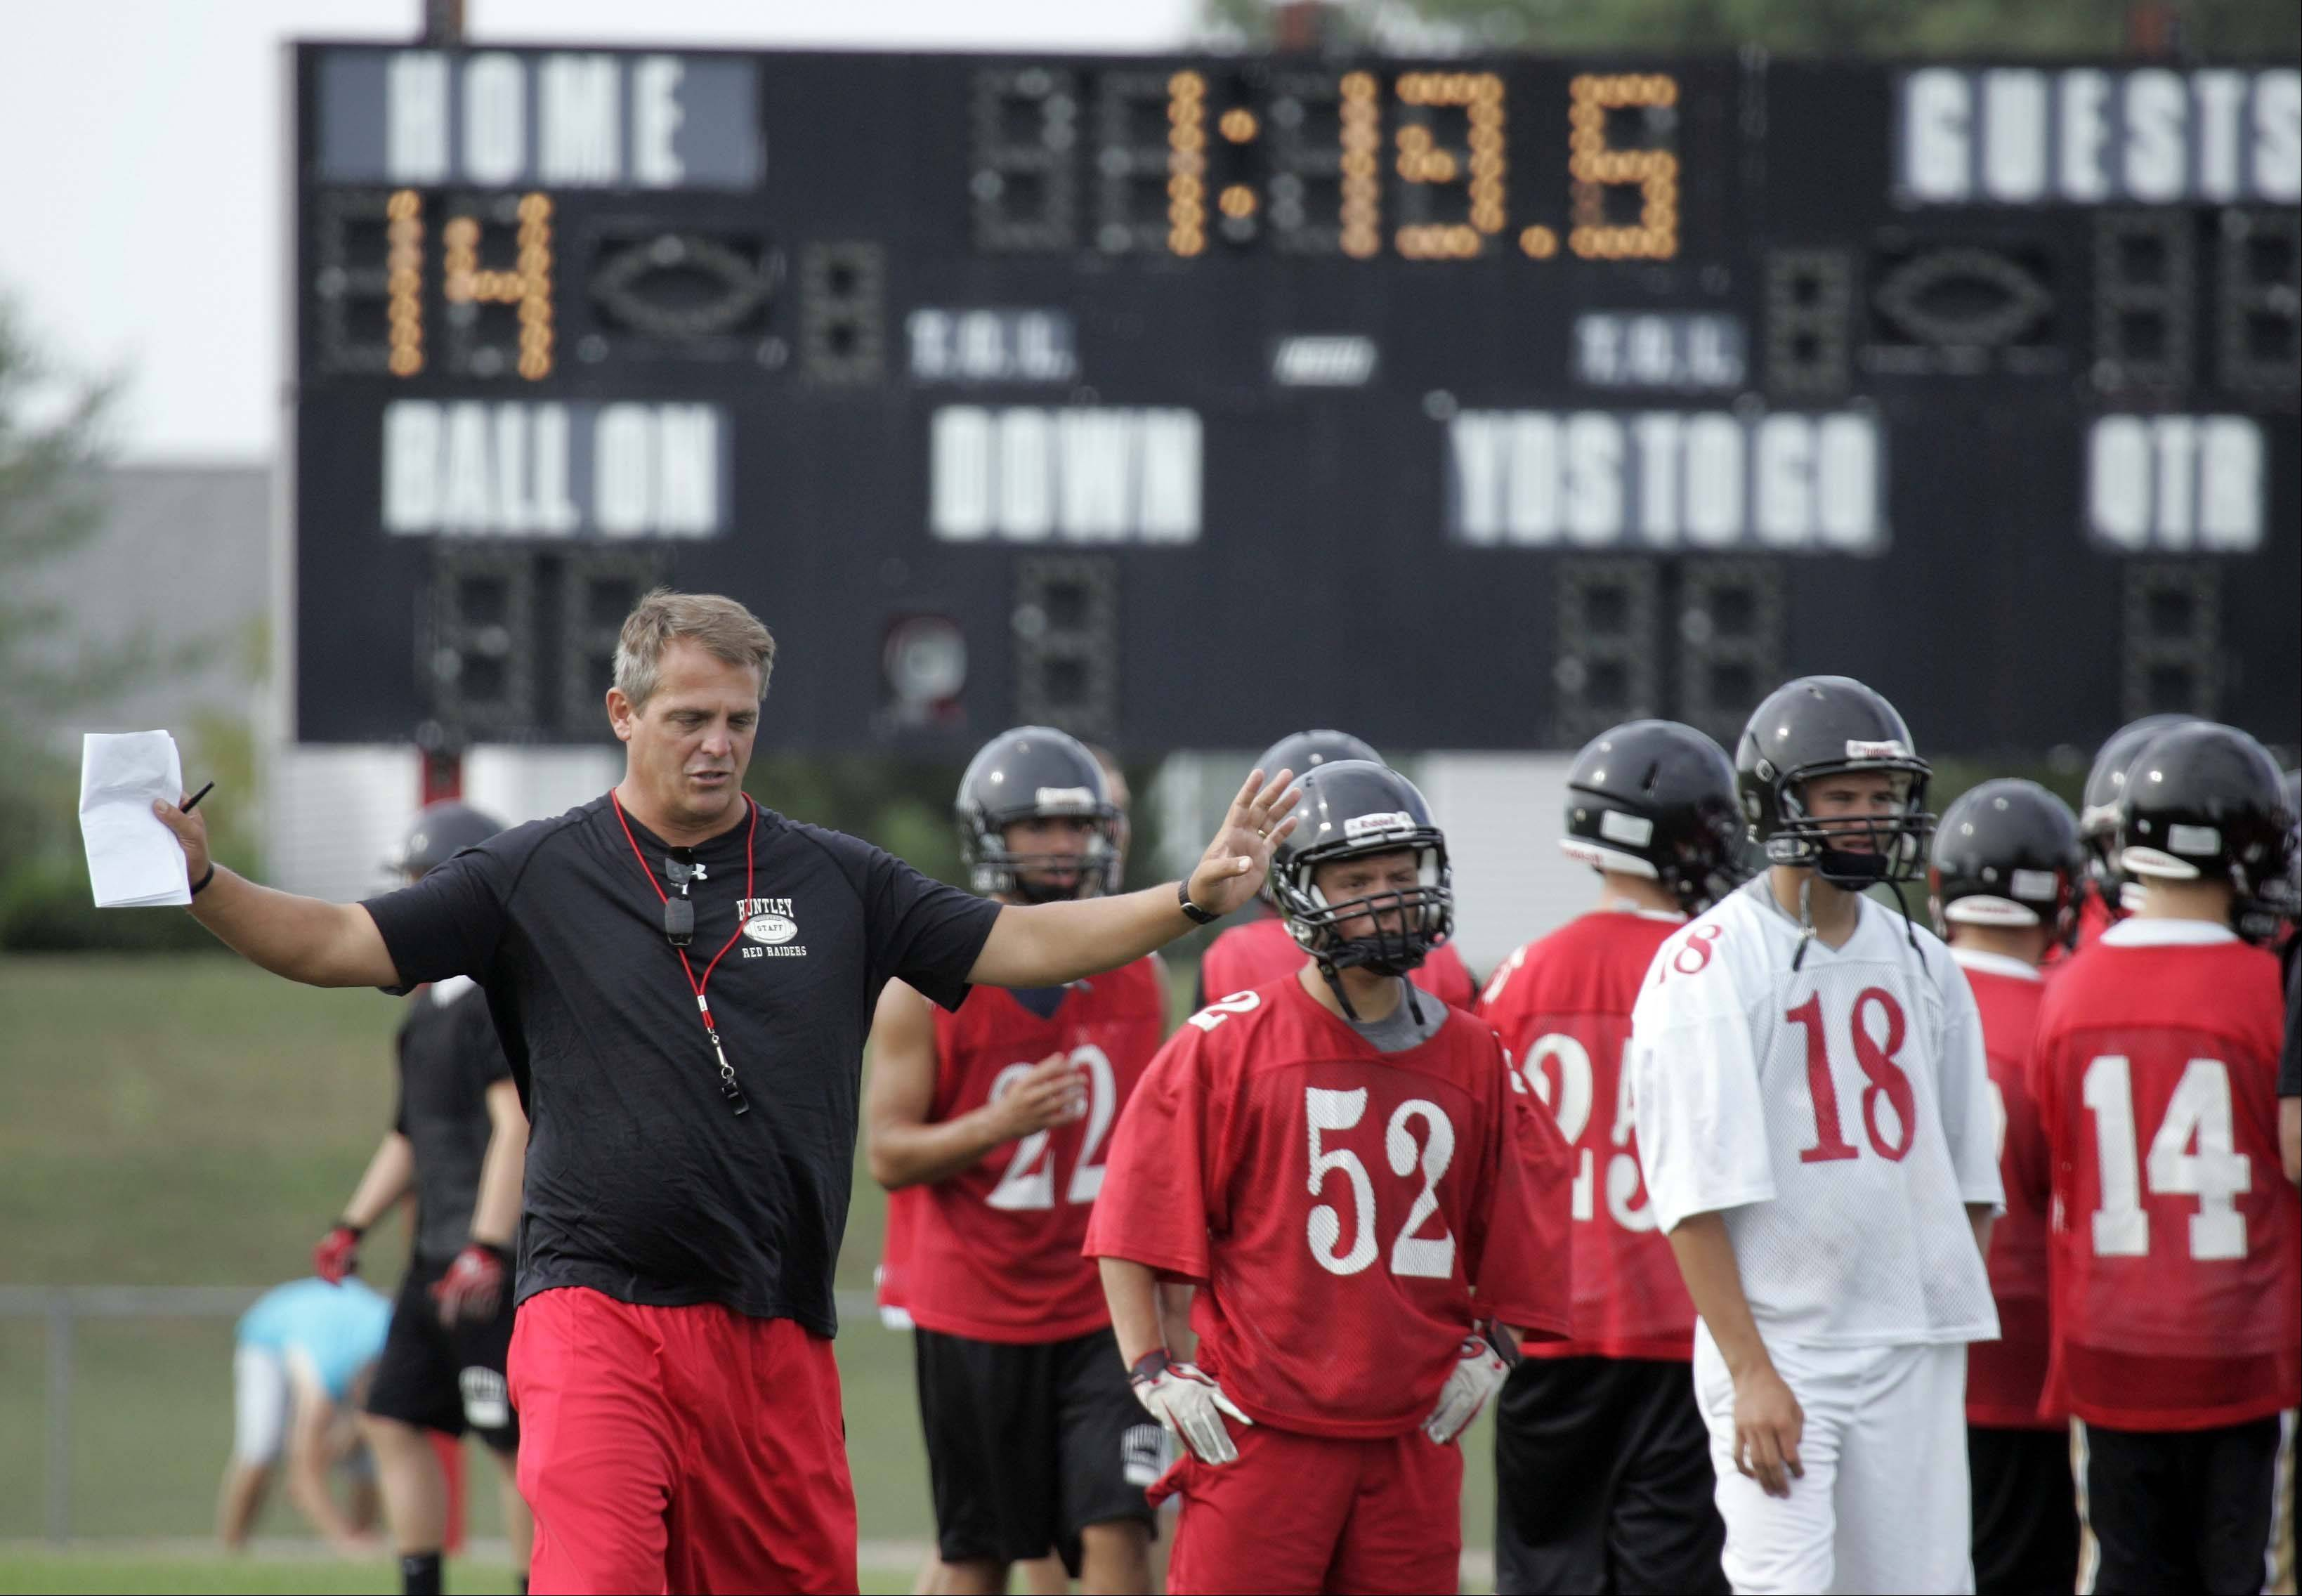 New coach John Hart works with his athletes at Huntley High School.